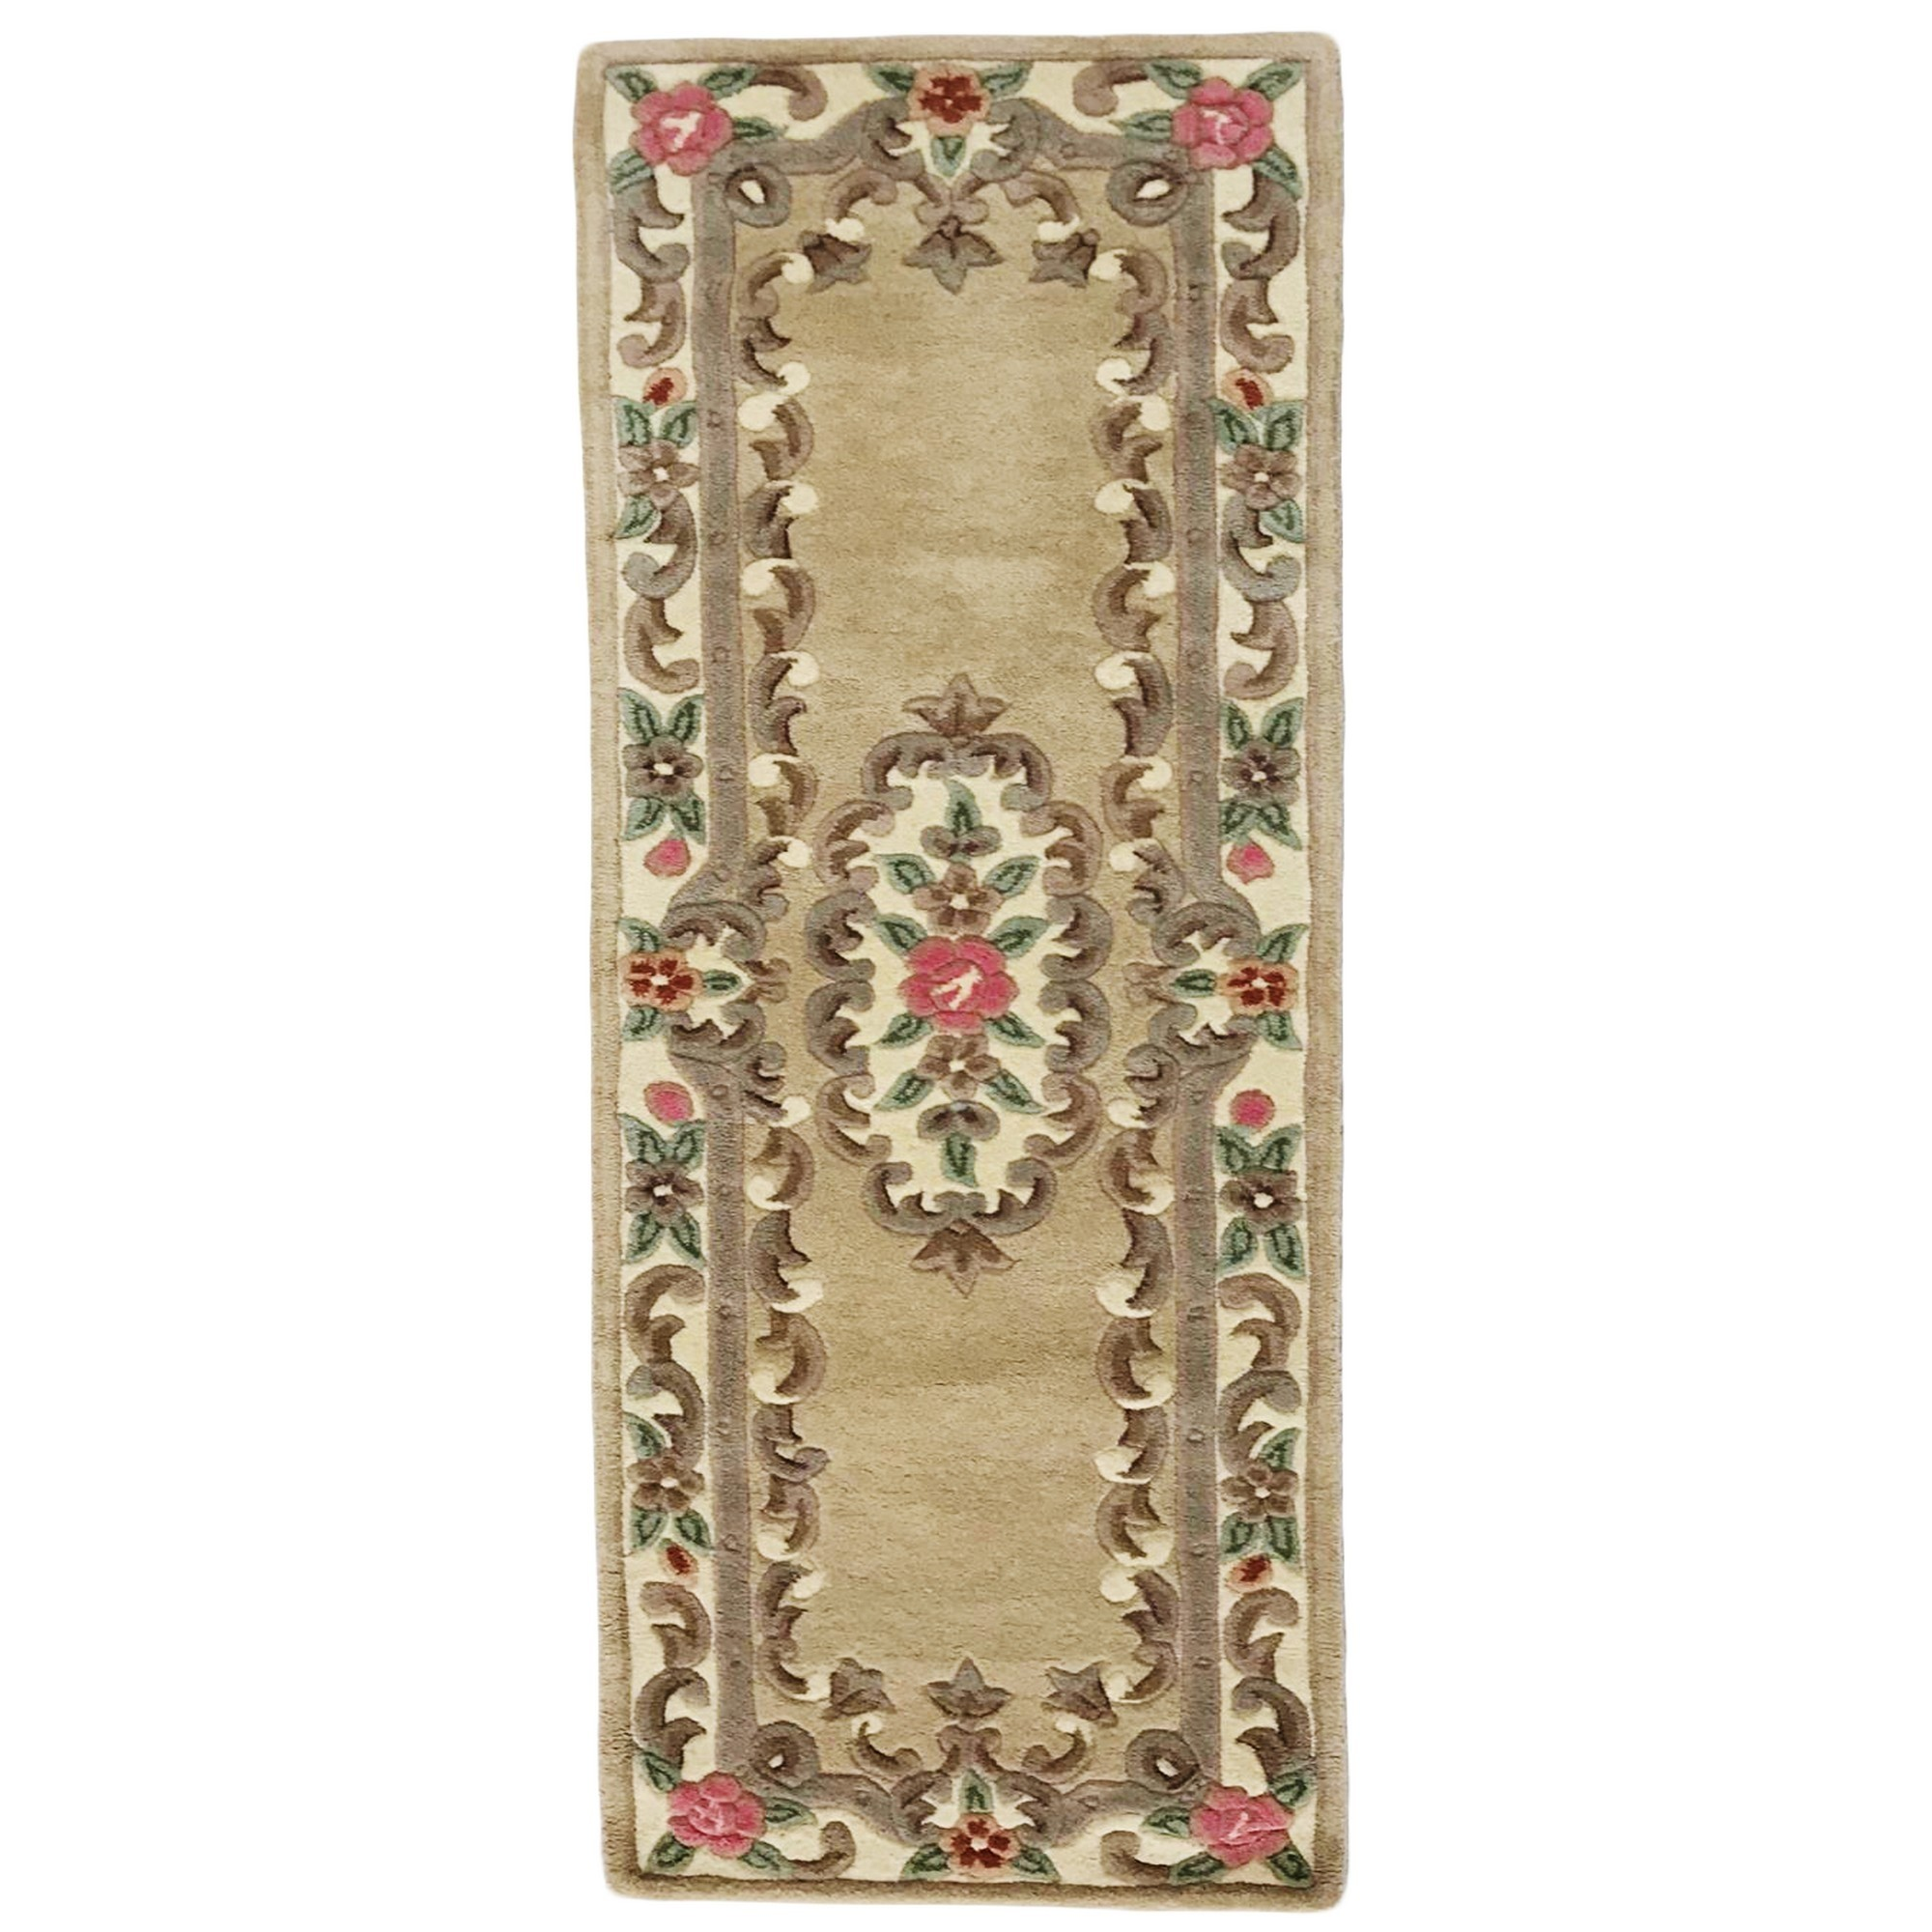 Avalon French Aubusson Wool Runner Rug, 210x67cm, Fawn